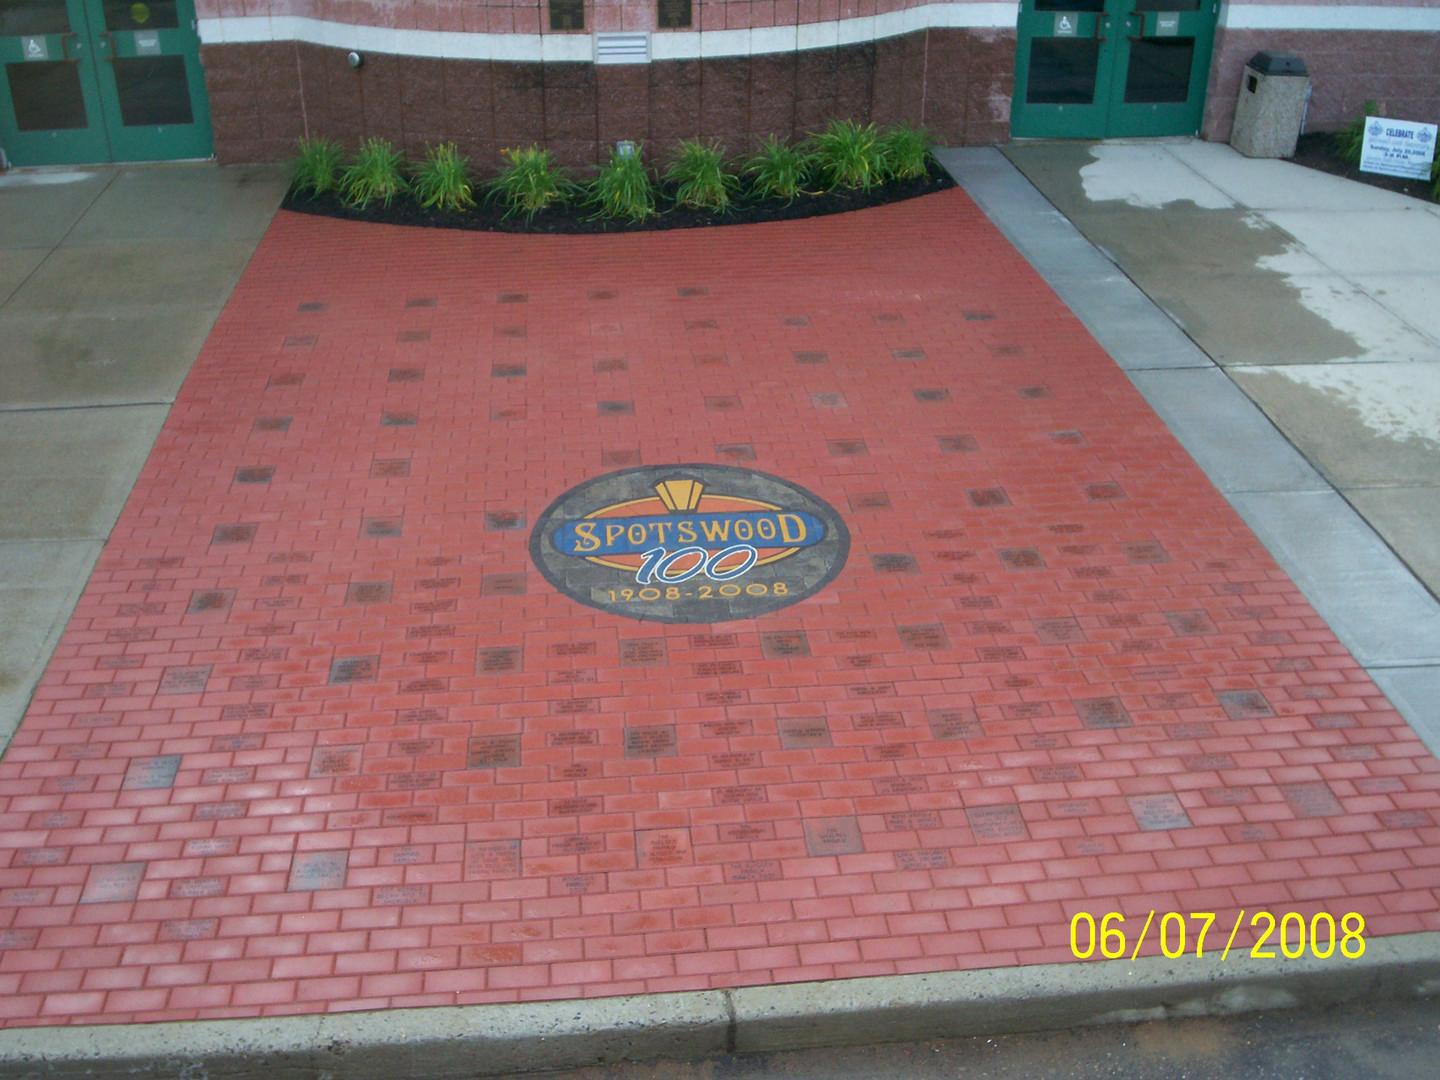 PAVERART Spotswood NJ 100th Anniversary Walkway